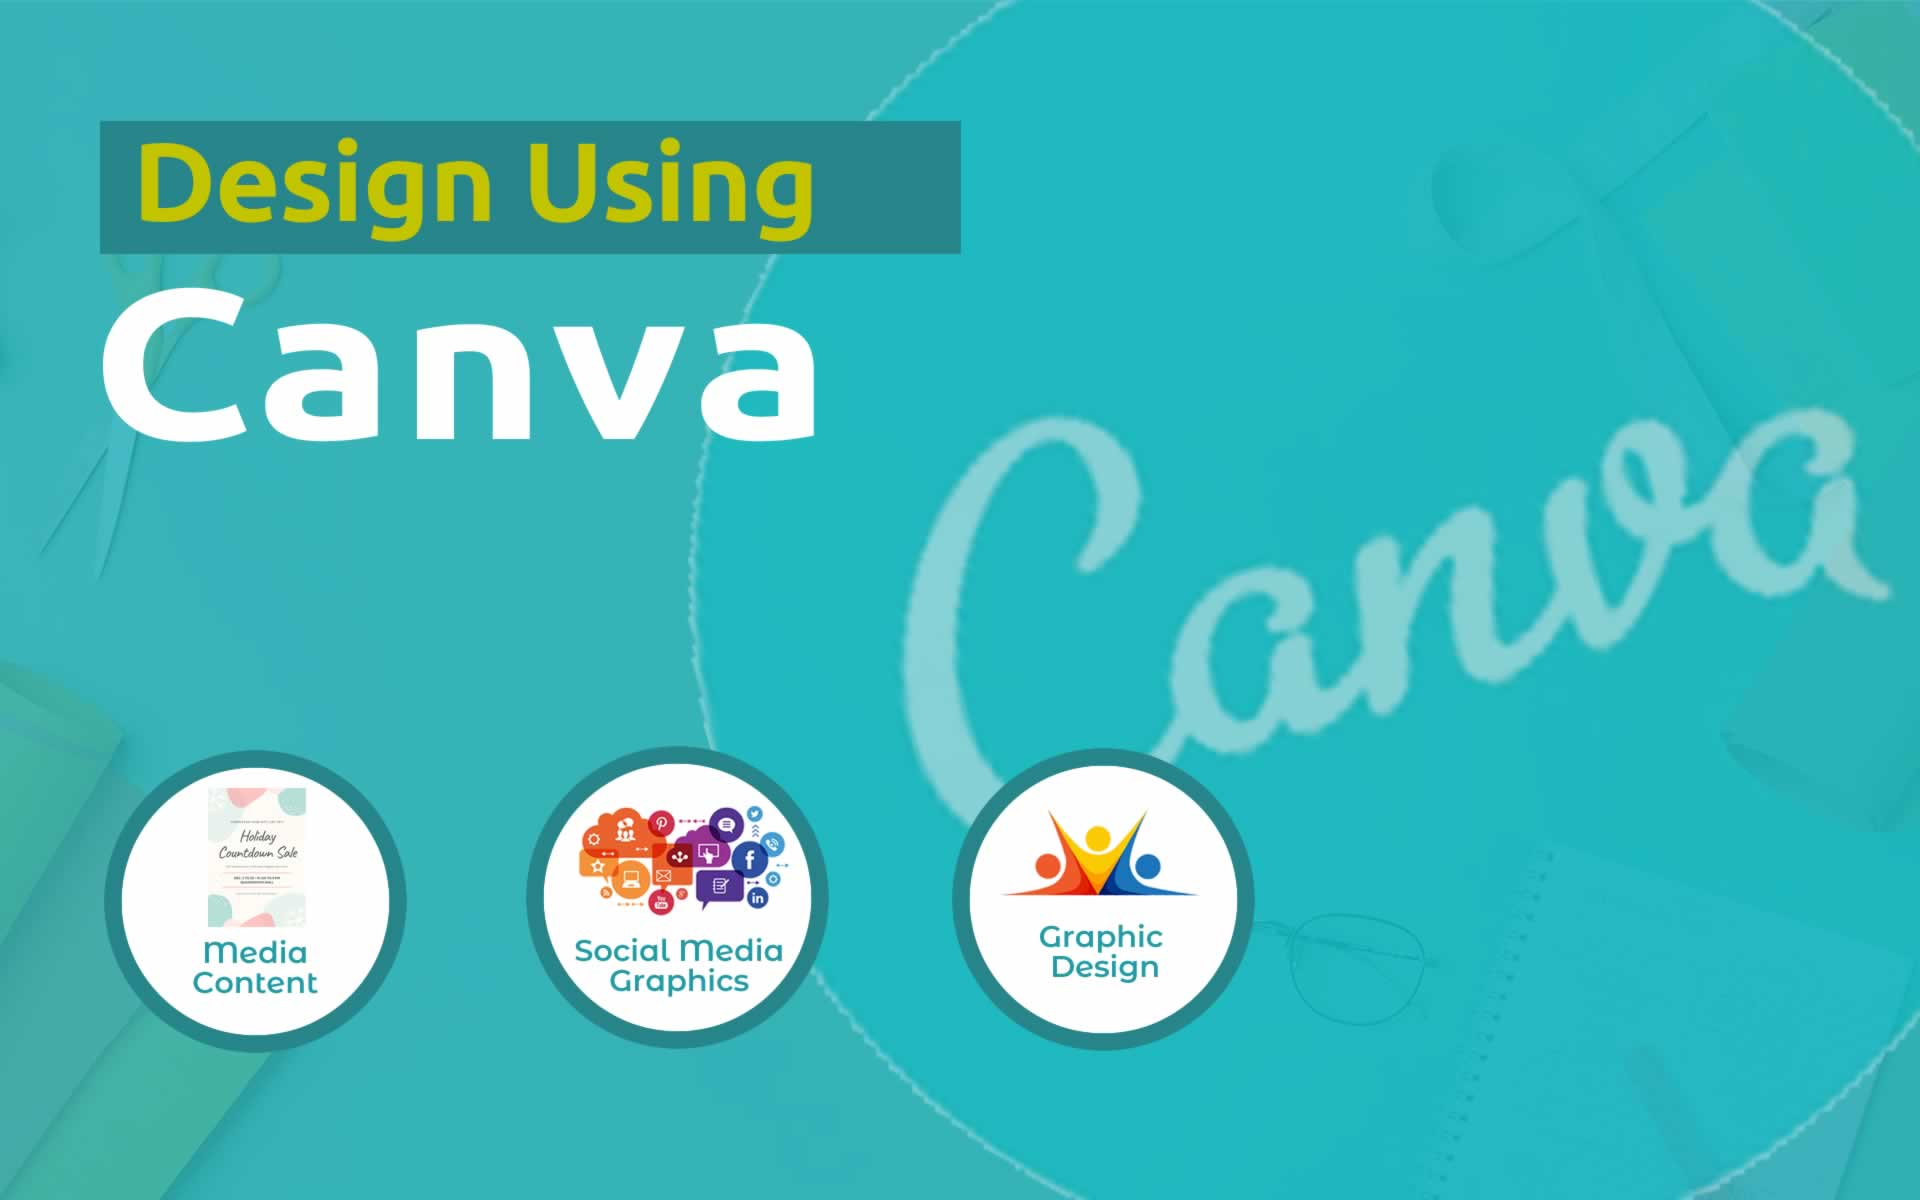 Learn How to Design using Canva | 9-19 years (Typography+Social media design+ Graphic Design)